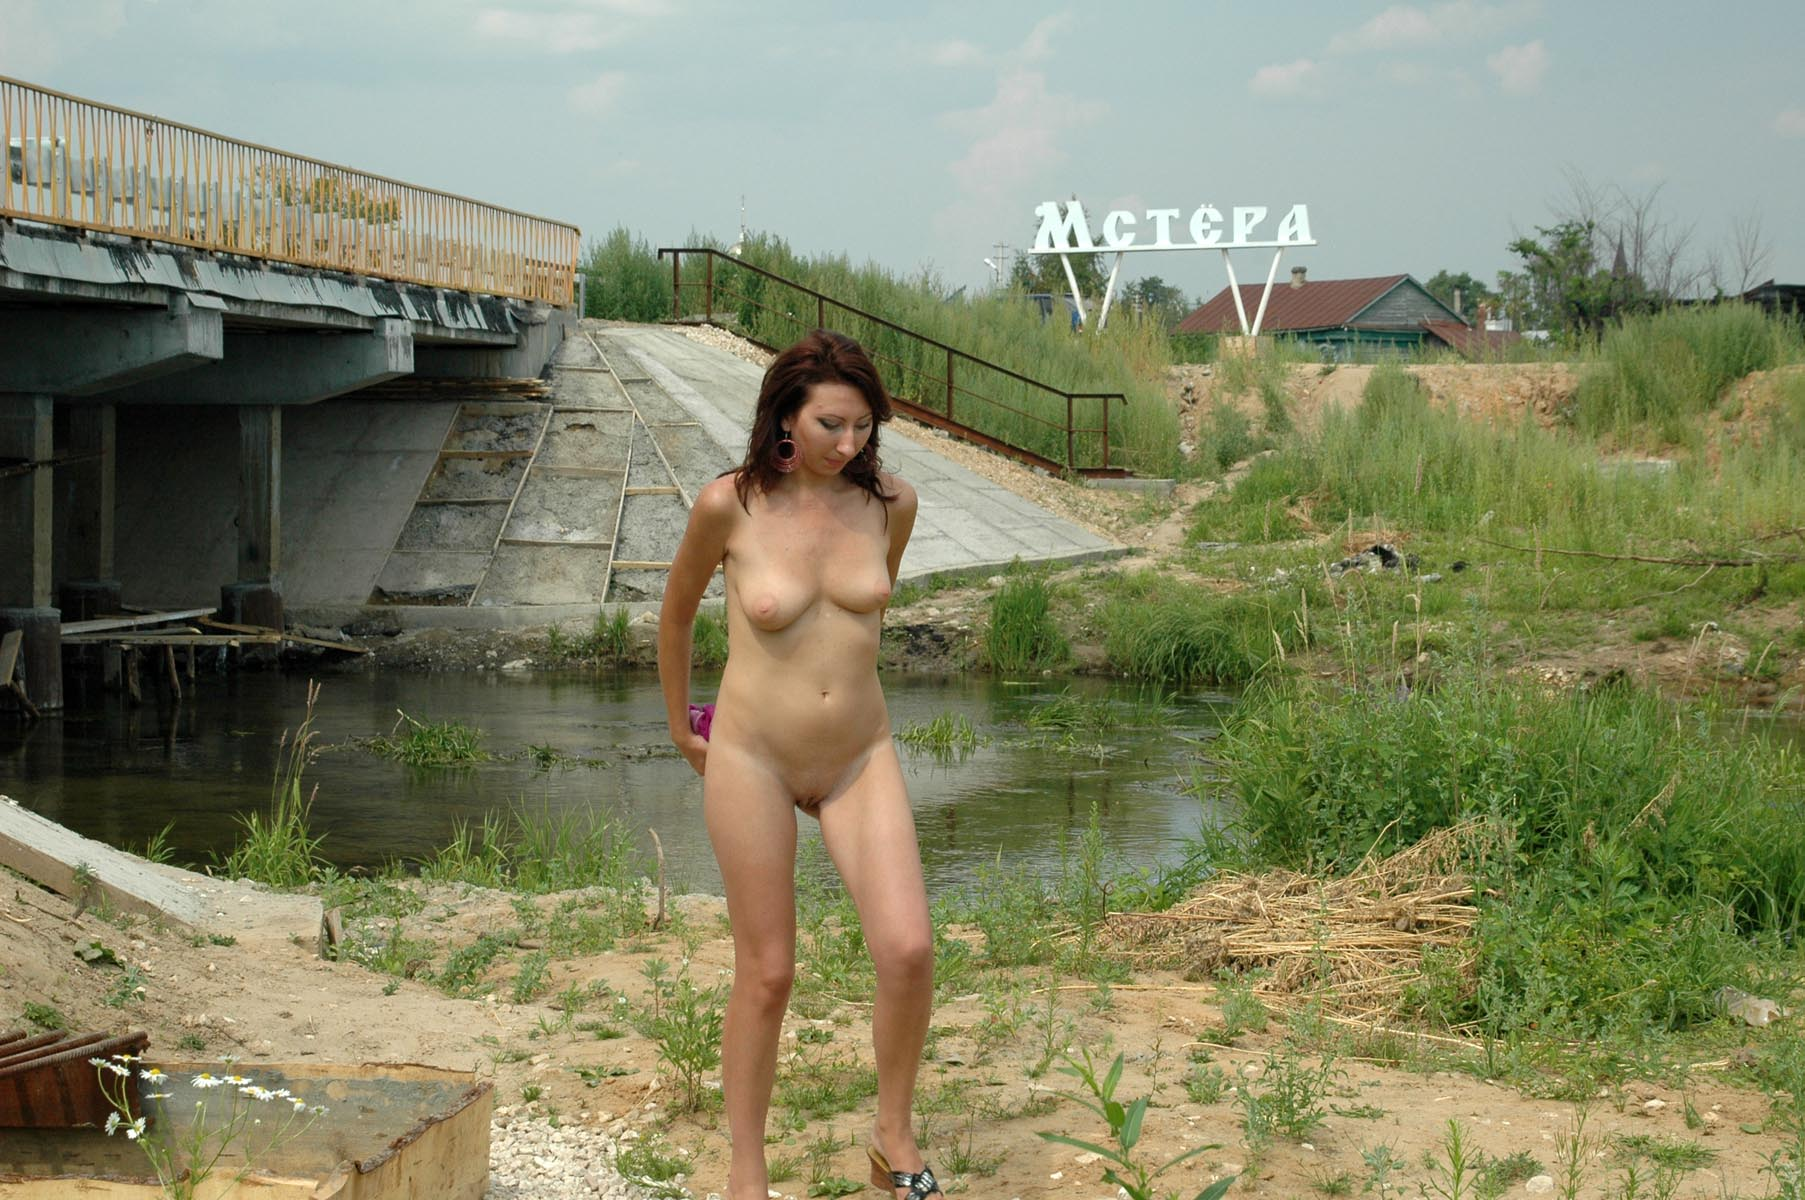 Russian girl walks naked in the country | Russian Sexy Girls